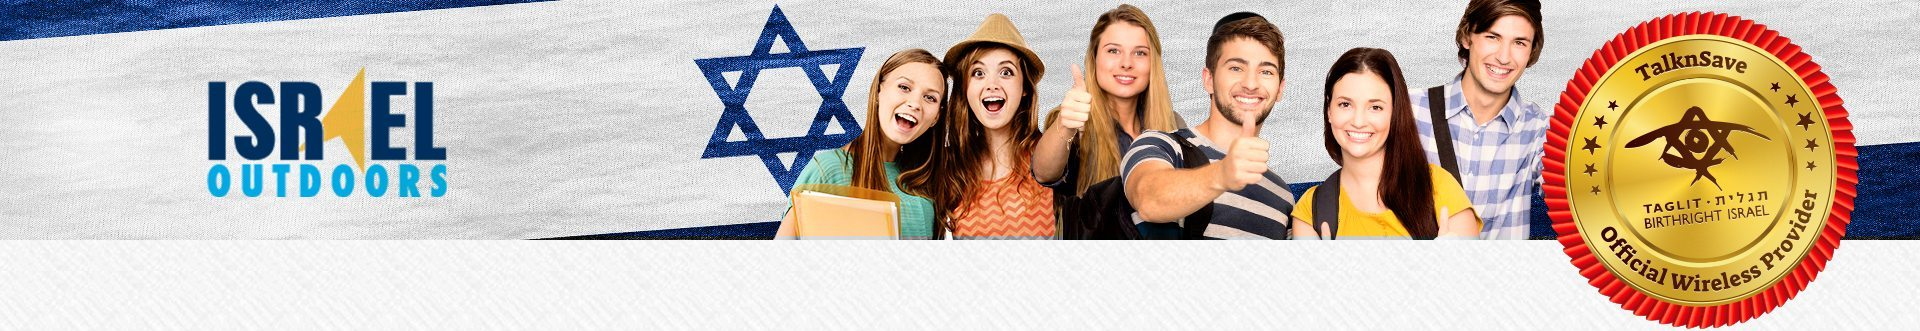 israel-outdoors-banner